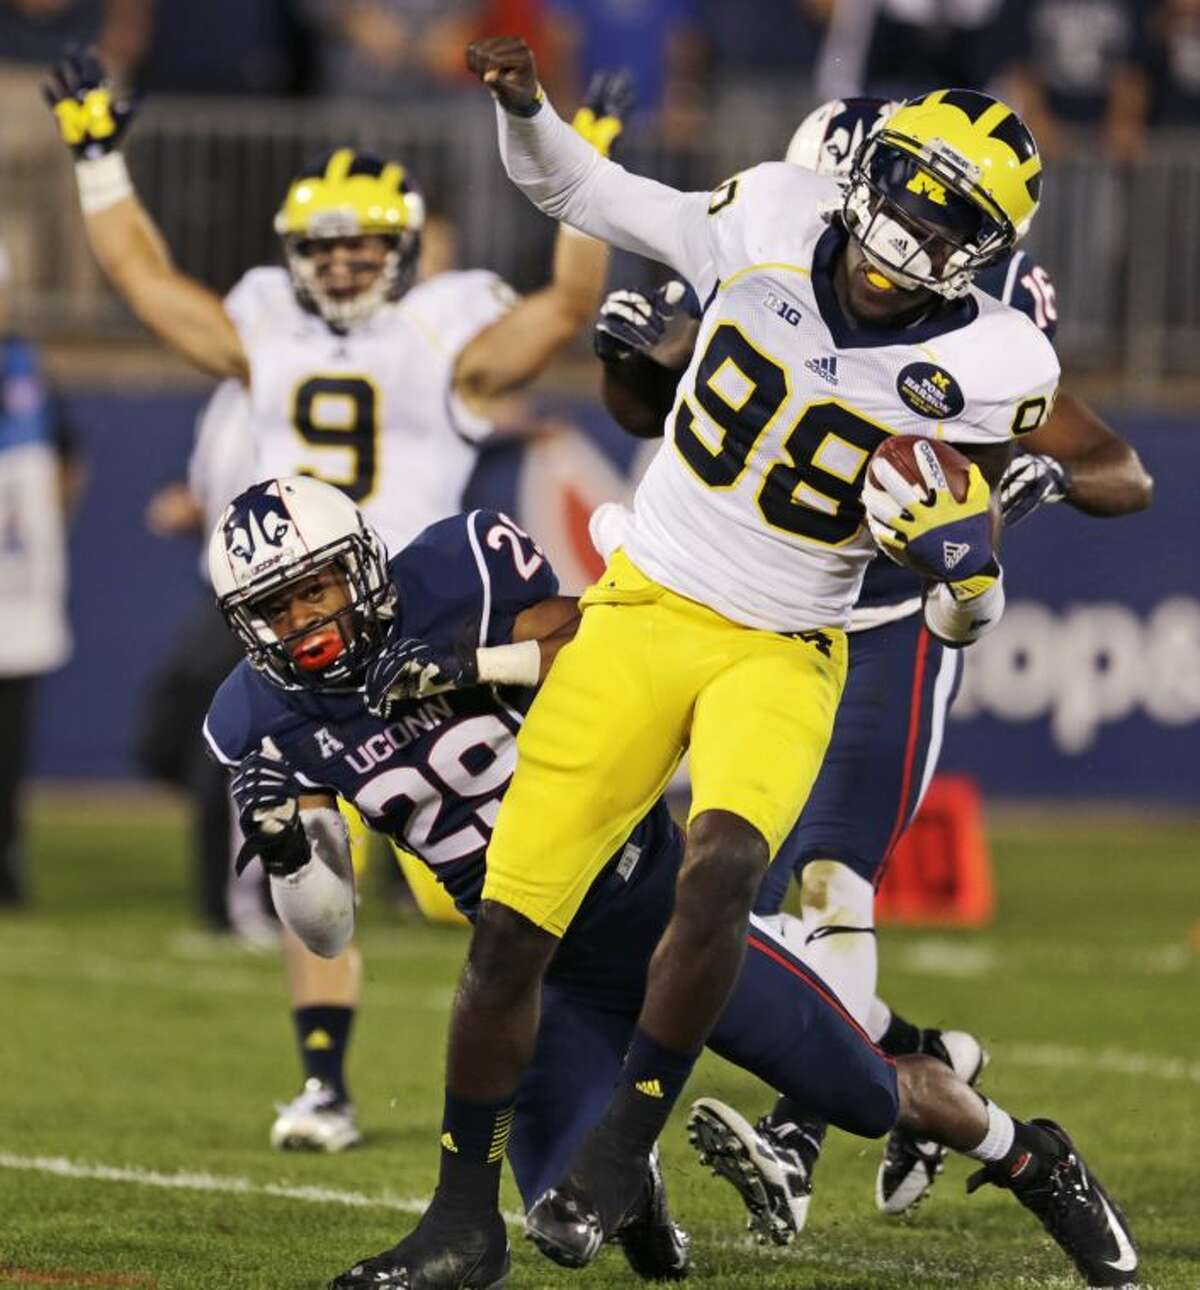 Michigan quarterback Devin Gardner (98) crosses the goal line, passing Connecticut cornerback Taylor Mack (29), for a touchdown during the first quarter of an NCAA college football game on Saturday, Sept. 21, 2013, in East Hartford, Conn. (AP Photo/Charles Krupa)